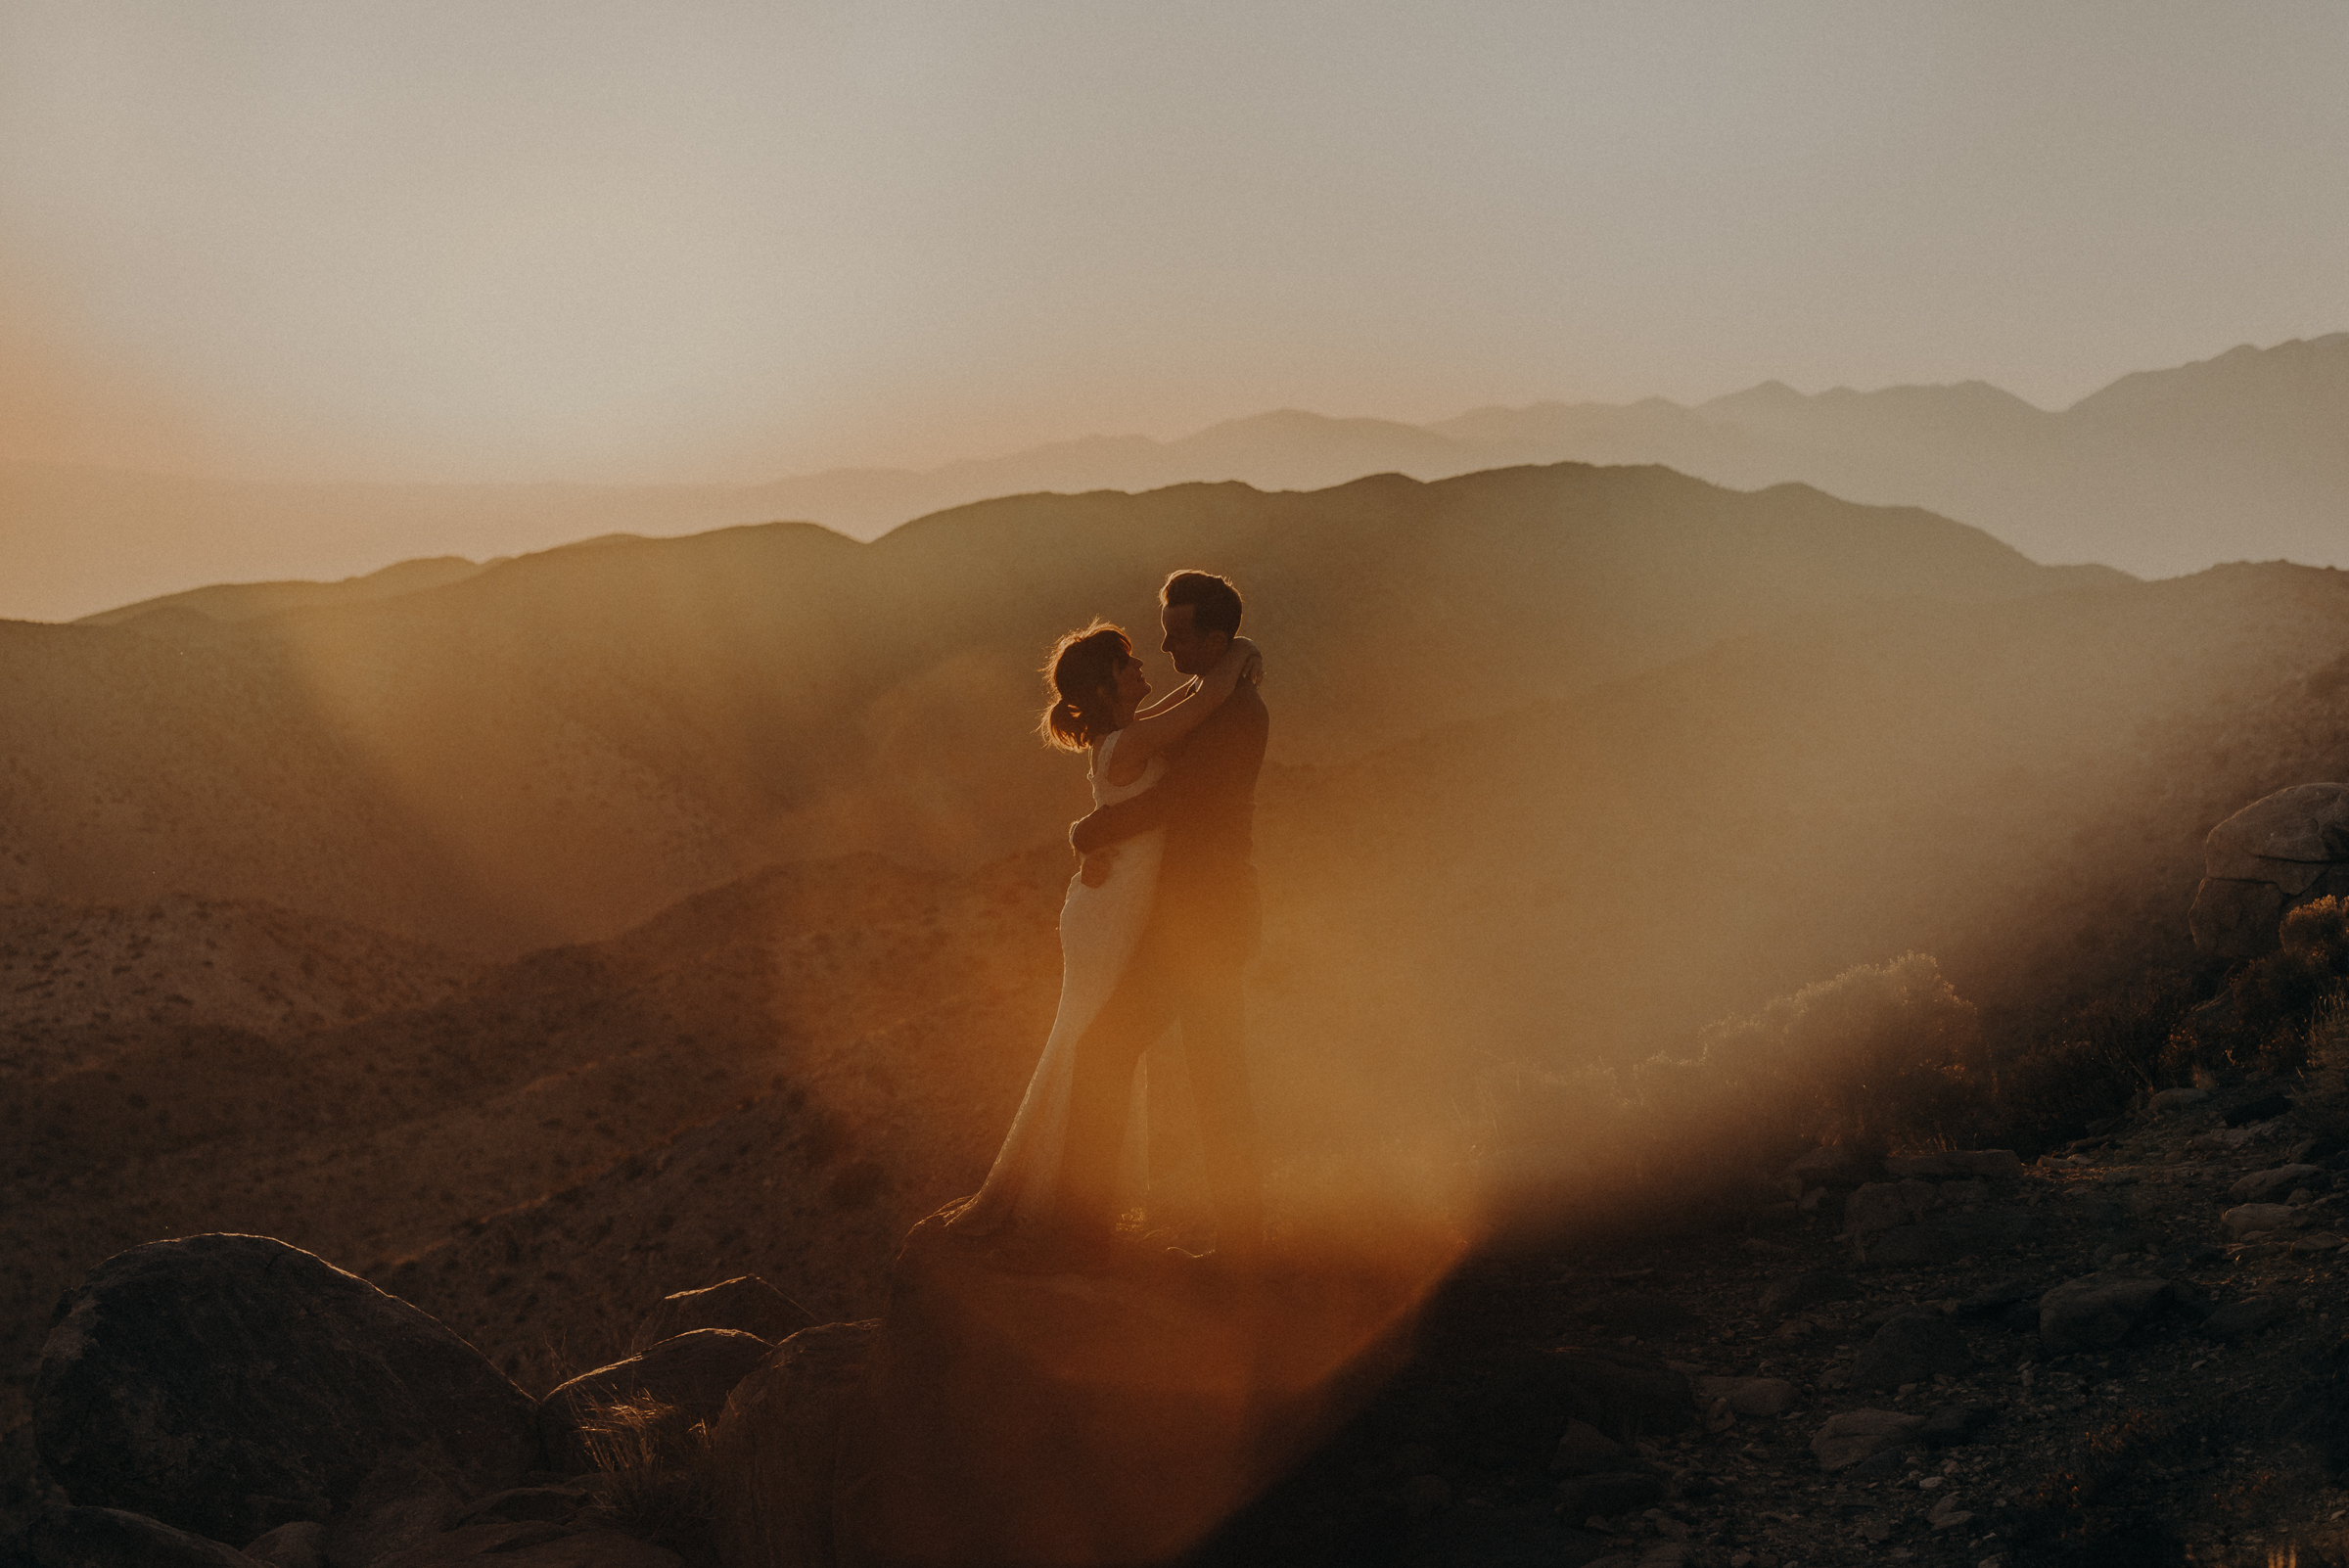 Joshua Tree Elopement - Los Angeles Wedding Photographers - IsaiahAndTaylor.com - L.A. Elopement